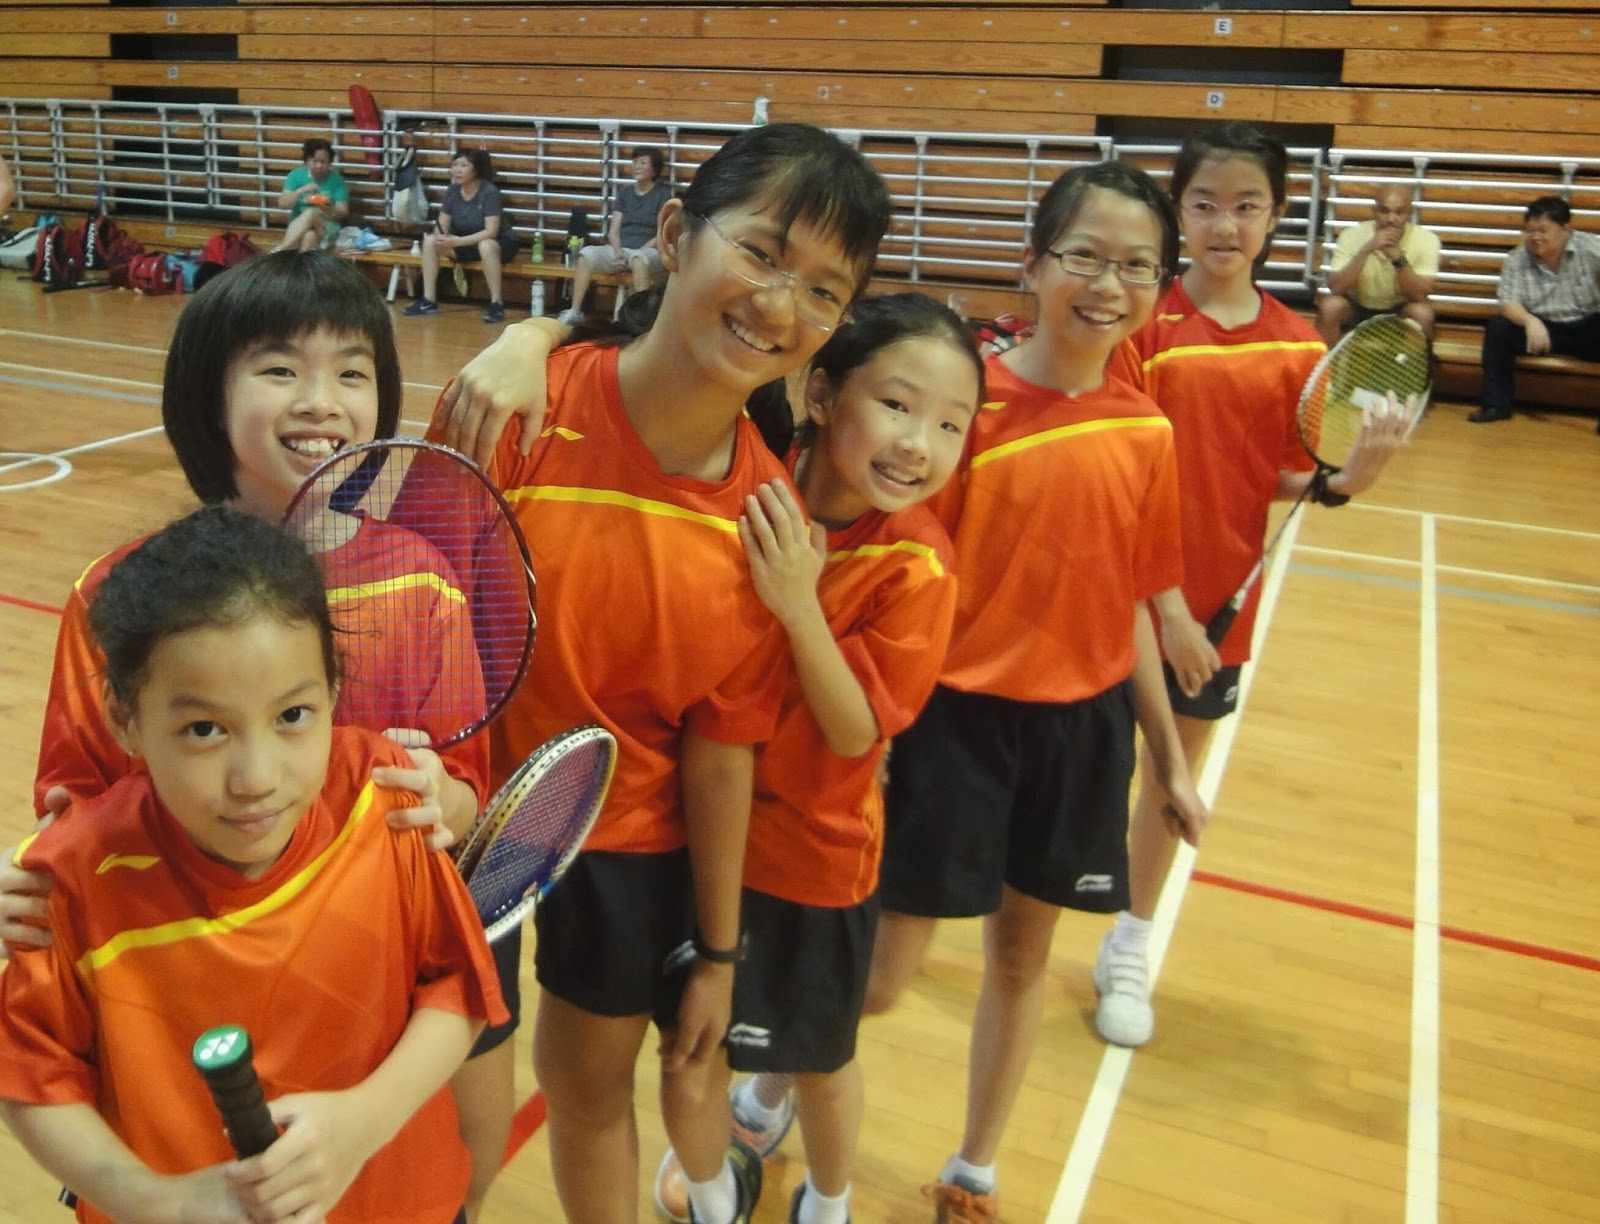 nanyang single women So in 2011, nanyang girls' high school initiated a one-to-one program to introduce ipad to teachers and students over a two-year period the program began with a single grade level and gradually expanded to include the entire student body.